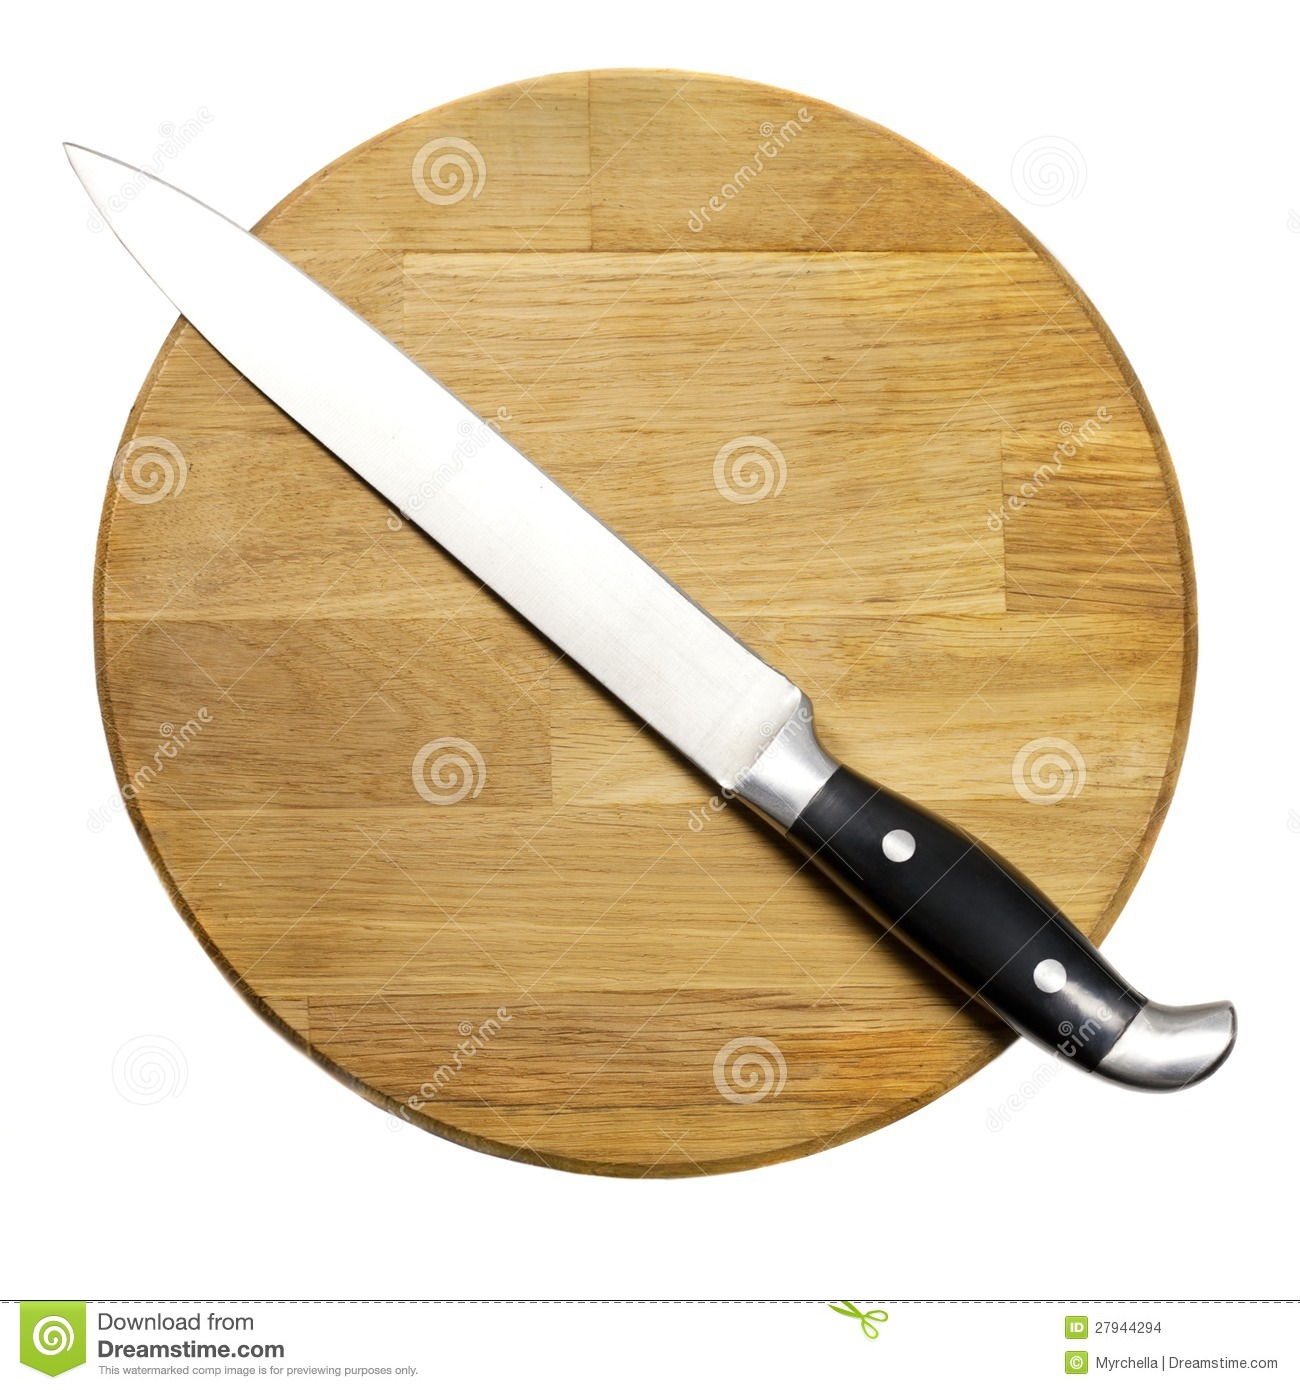 large kitchen knife on a wooden board stock images image knife clipart black and white images